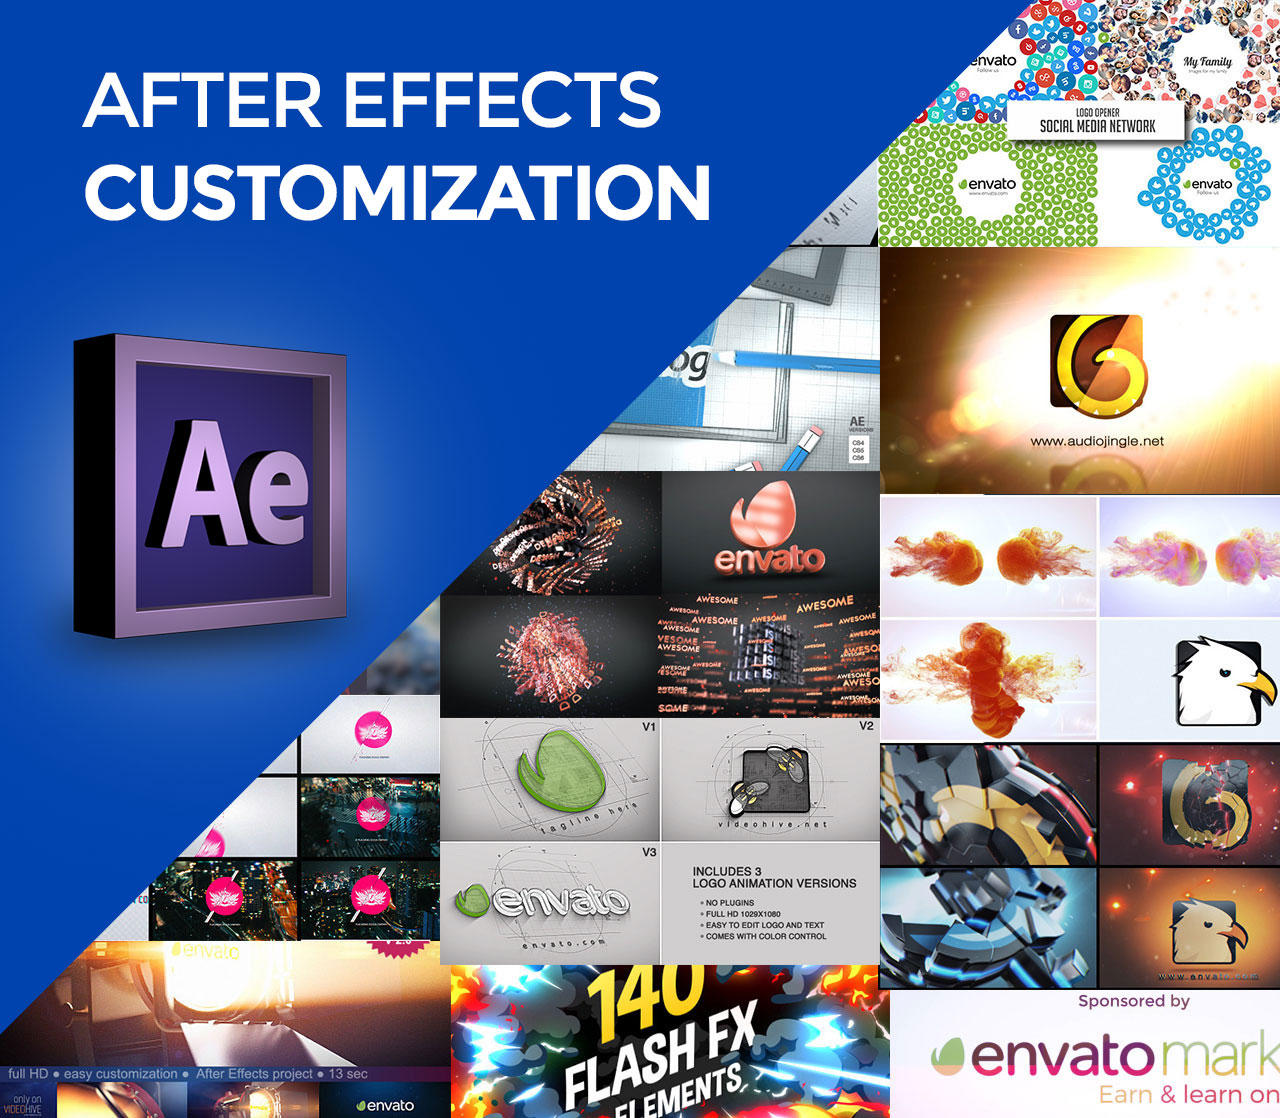 Express Basic After Effects Customization by CoralixThemes - 81813